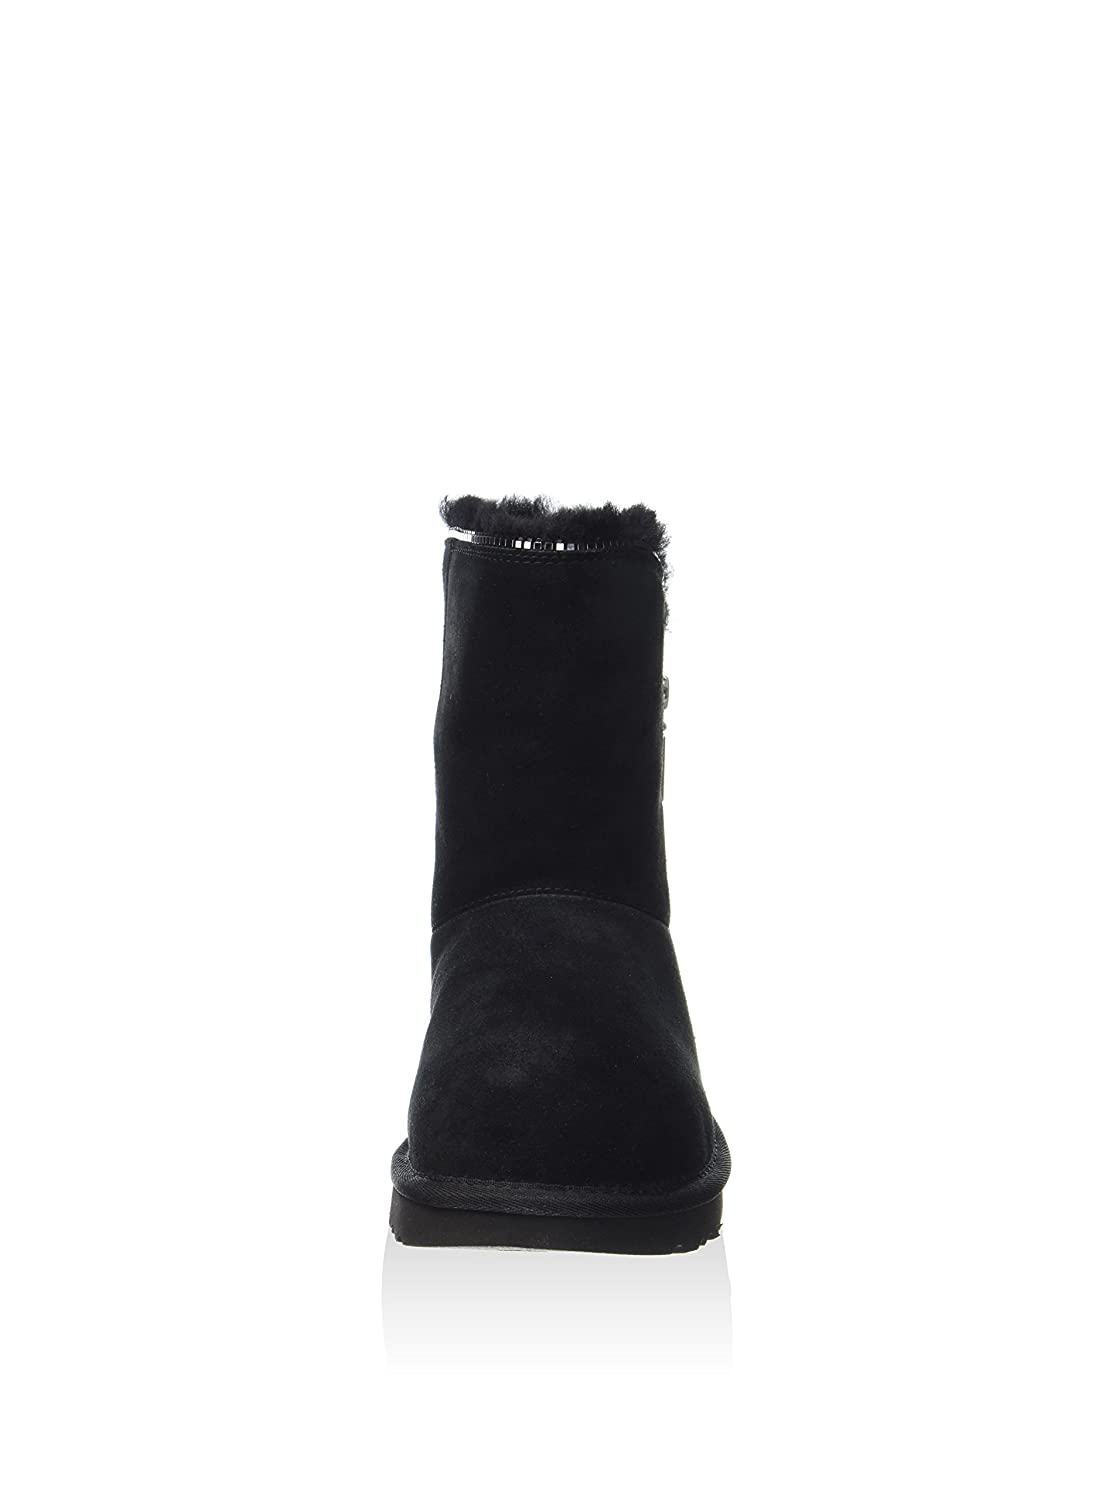 592bf19c8fc UGG Shoes - Boots FLORENCE 1013165 - black